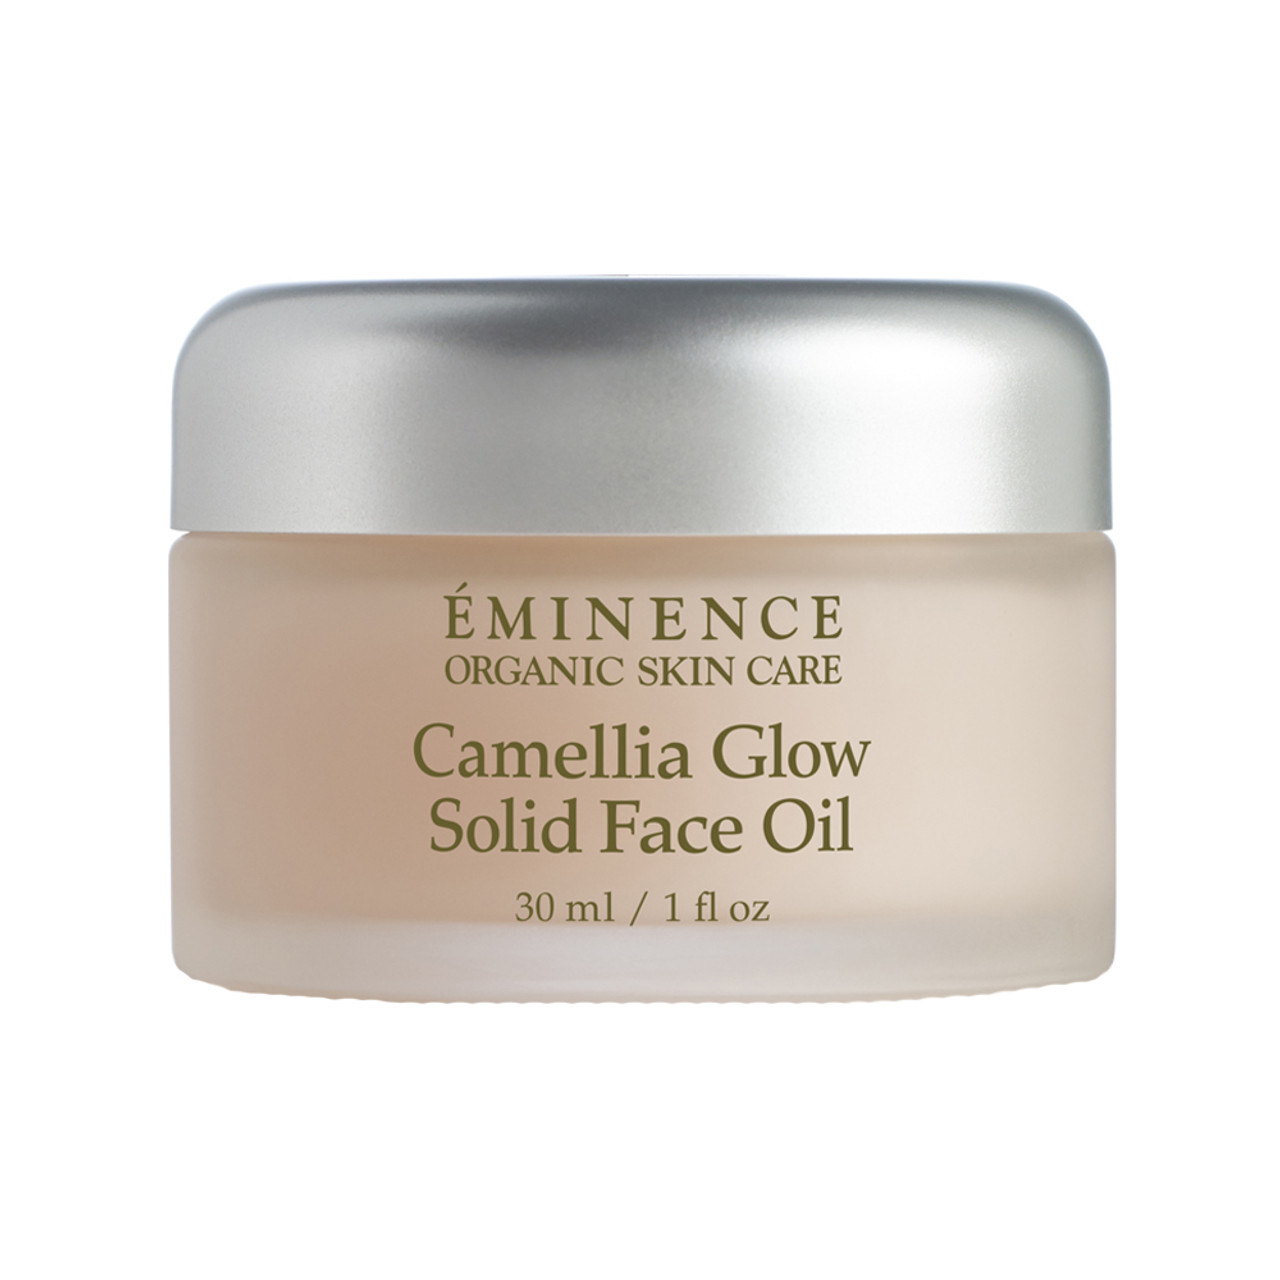 Eminence Camellia Glow Solid Face Oil